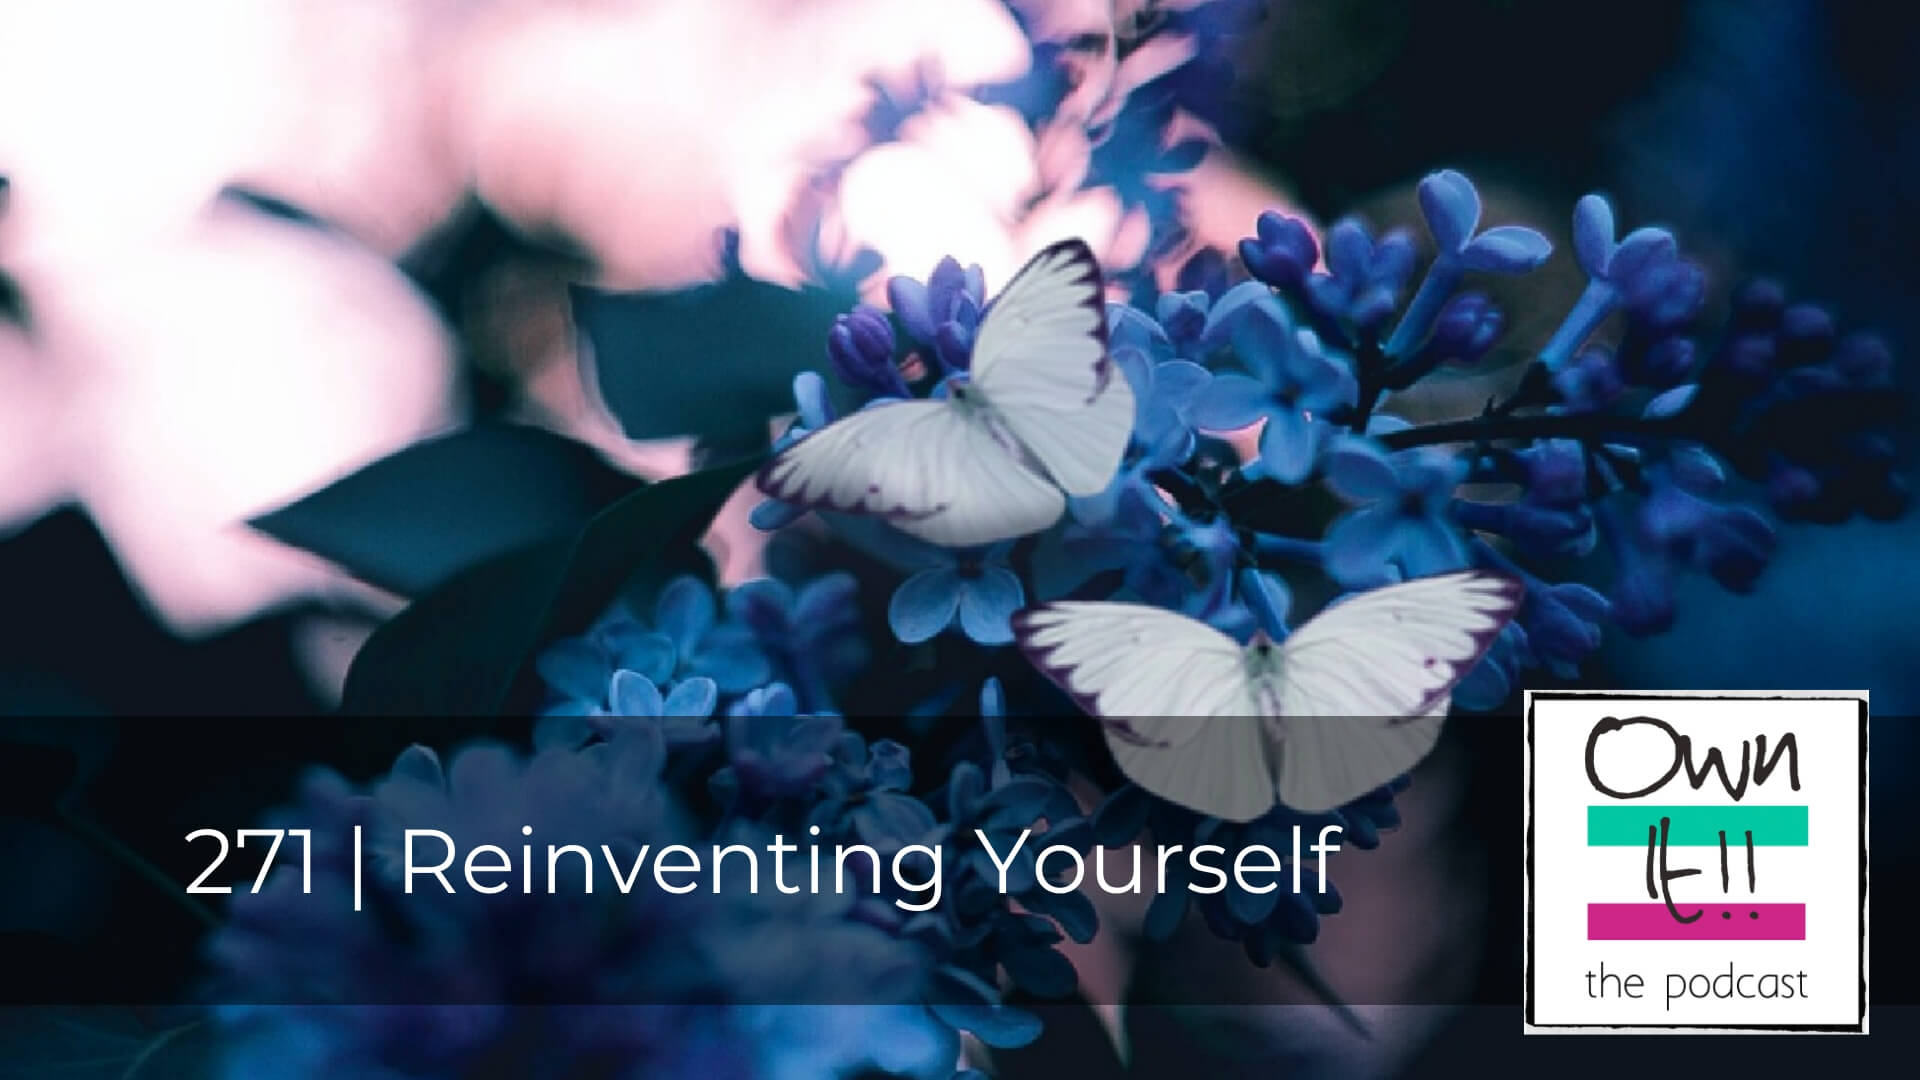 Own It! 271 | Reinventing Yourself